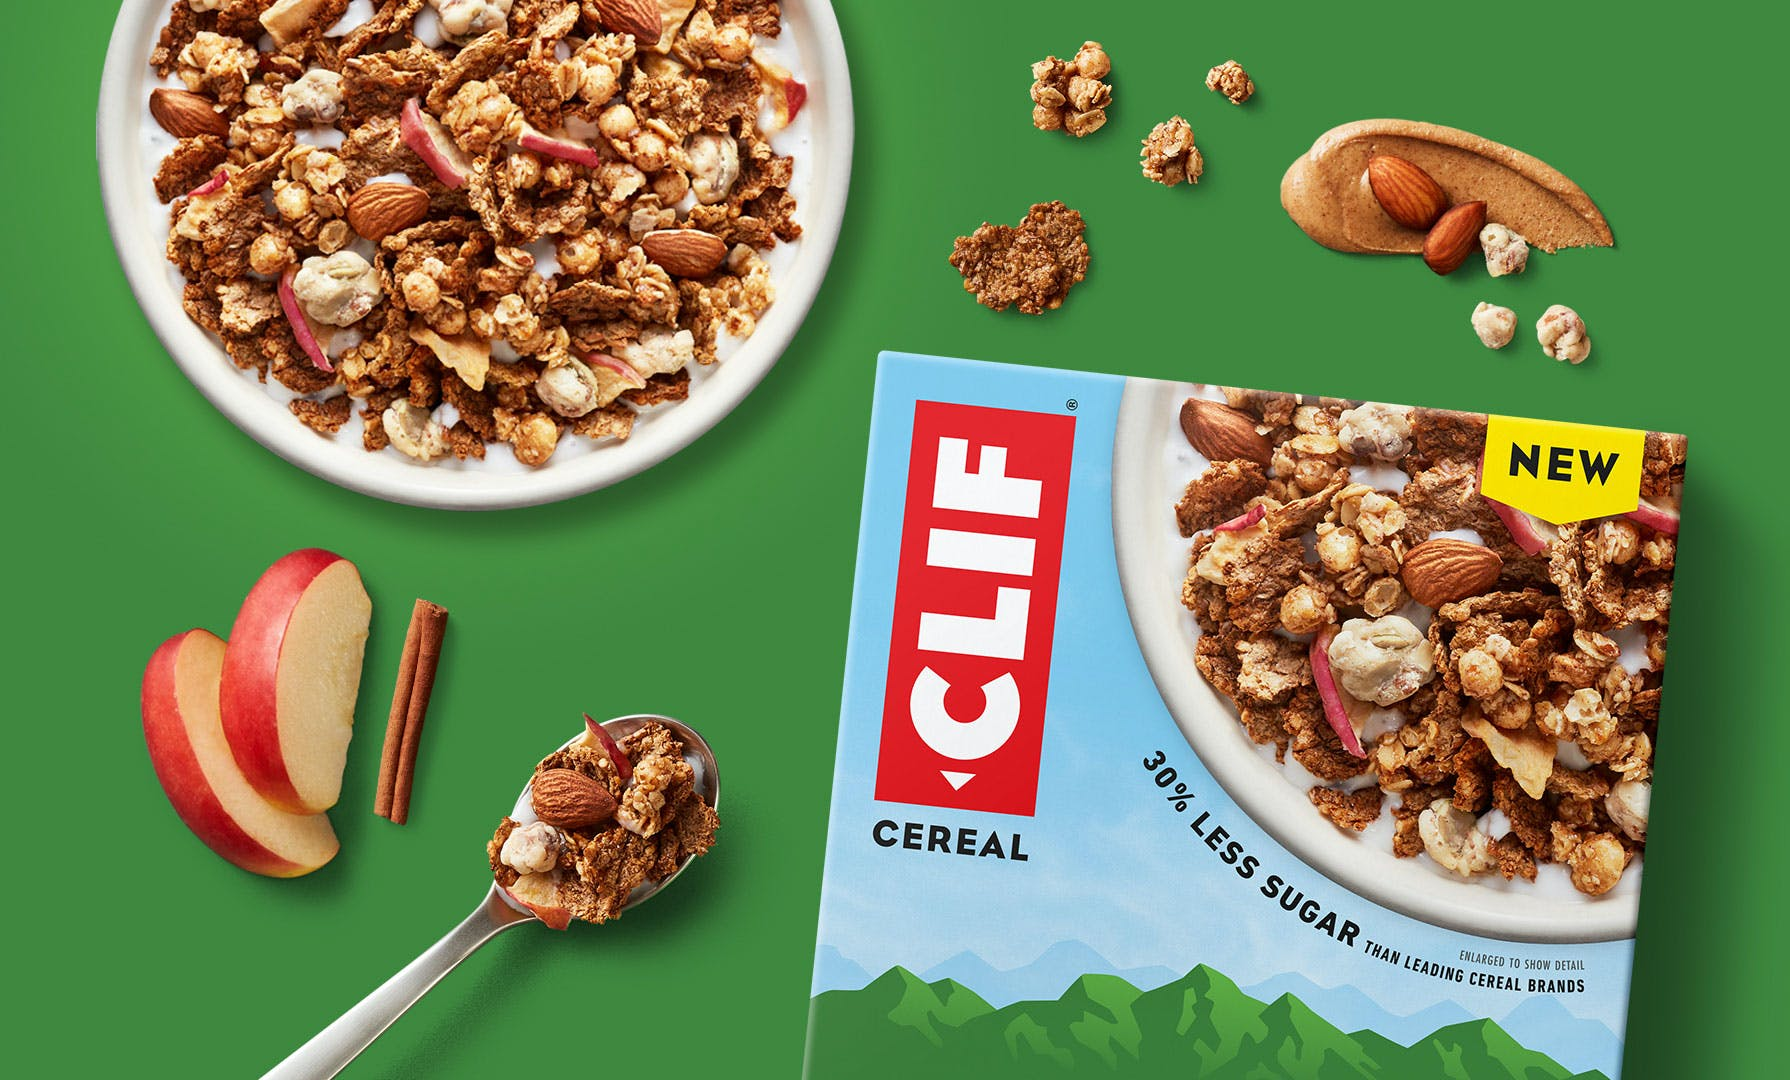 Clif cereal with spoon and ingredients